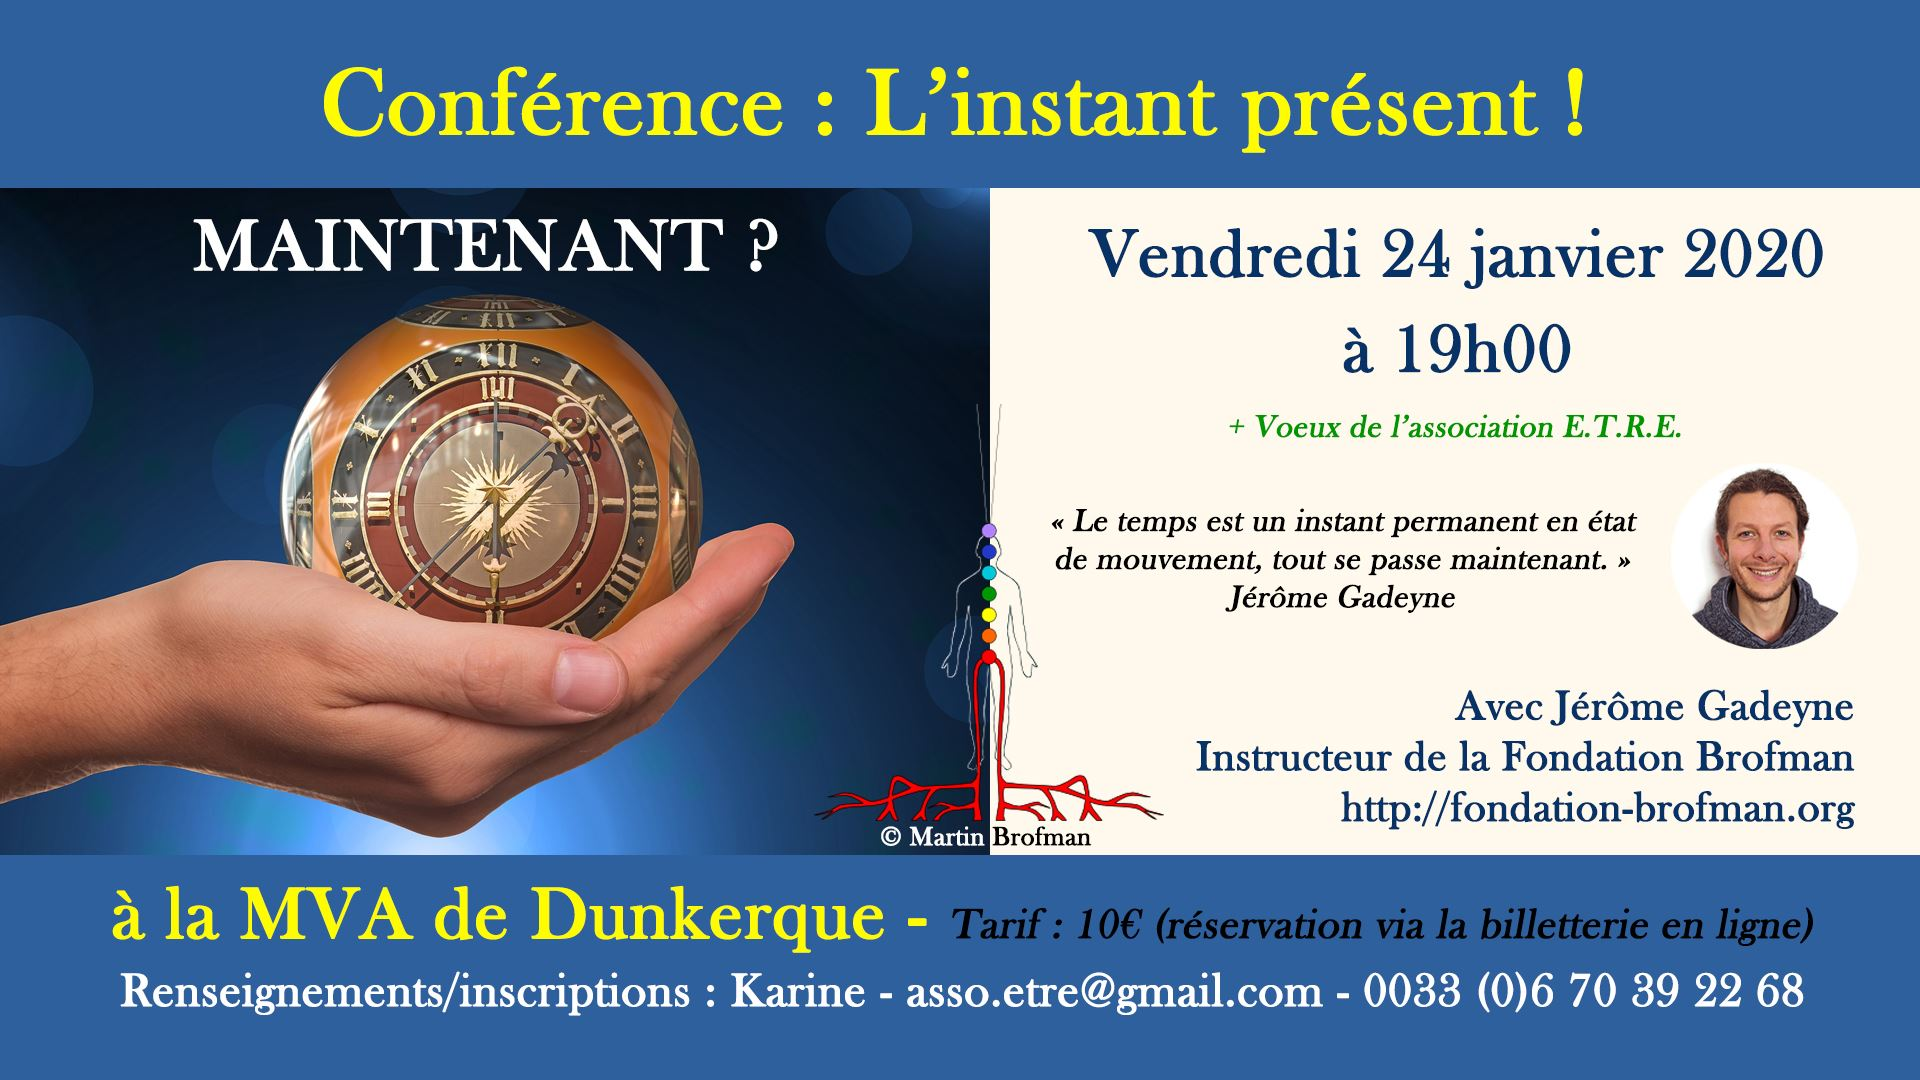 conference-jerome-gadeyne-instant-present-voeux-asso-etre-dunkerque